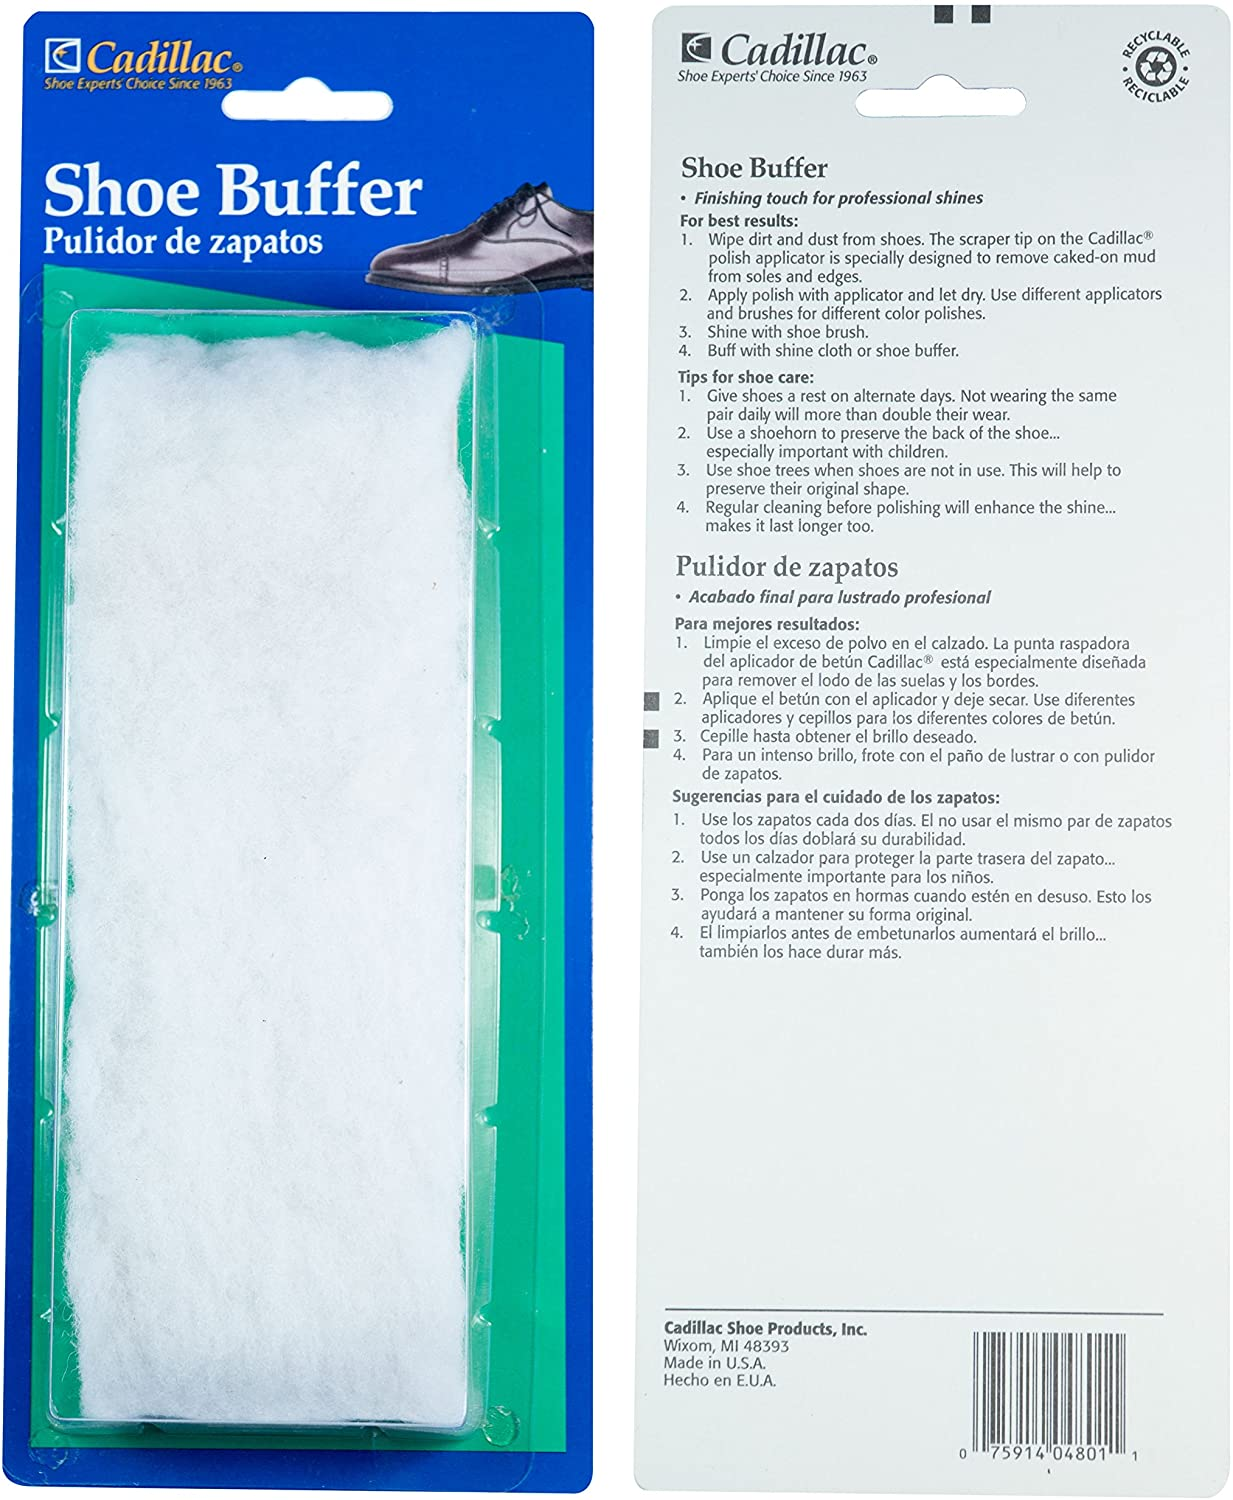 CADILLAC WOOD SHOE BUFFER BLISTER PACK